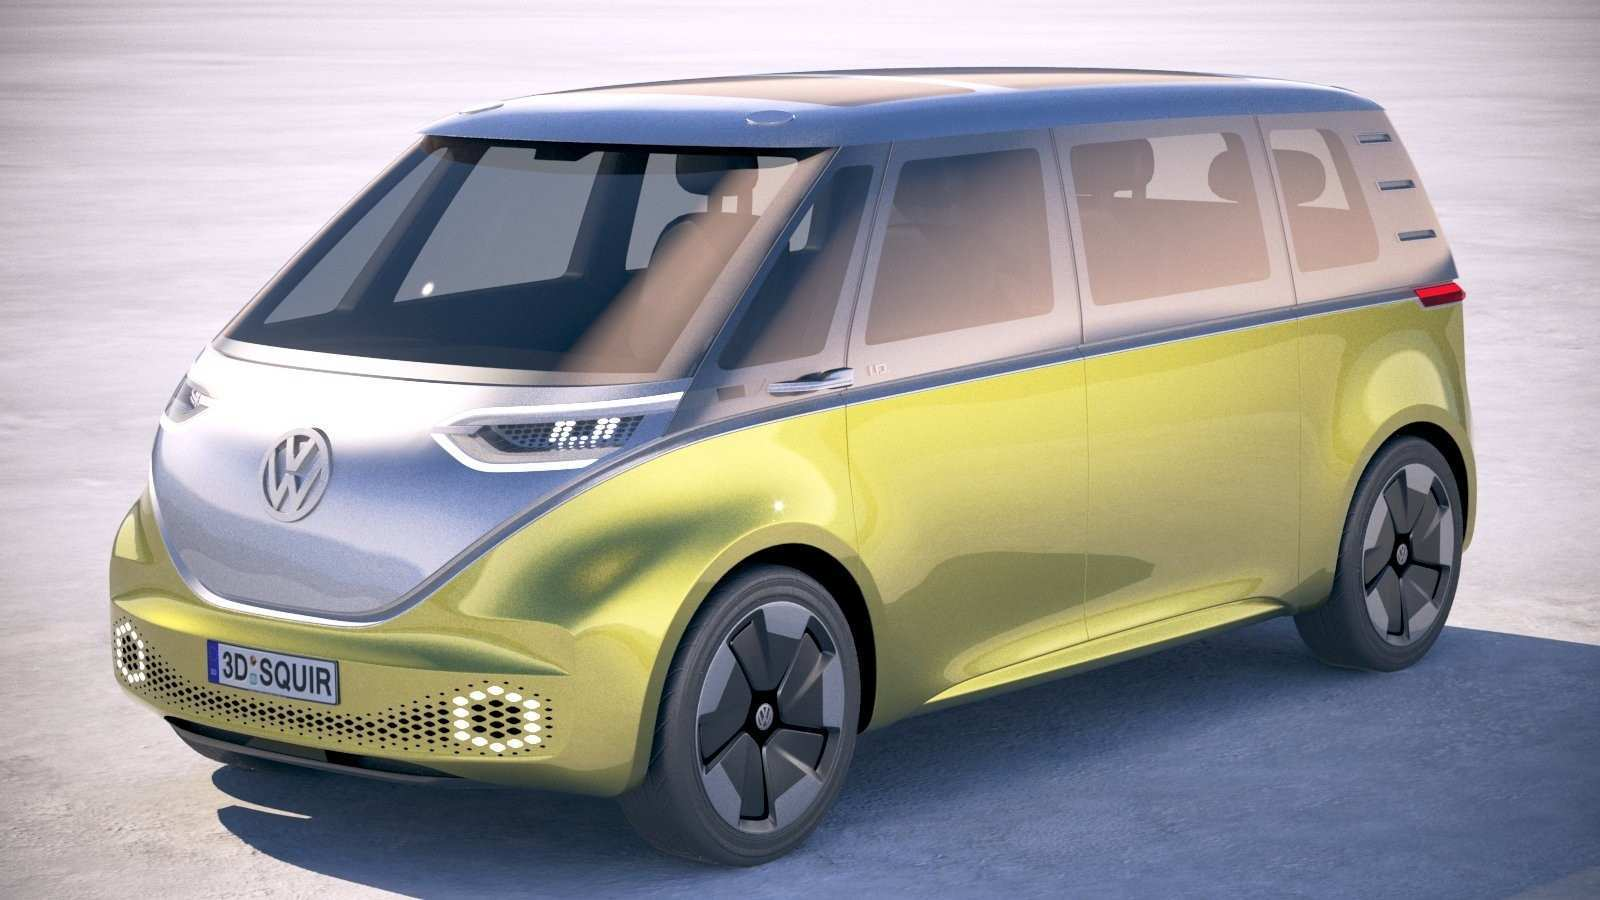 20 New Volkswagen Buzz 2020 Picture